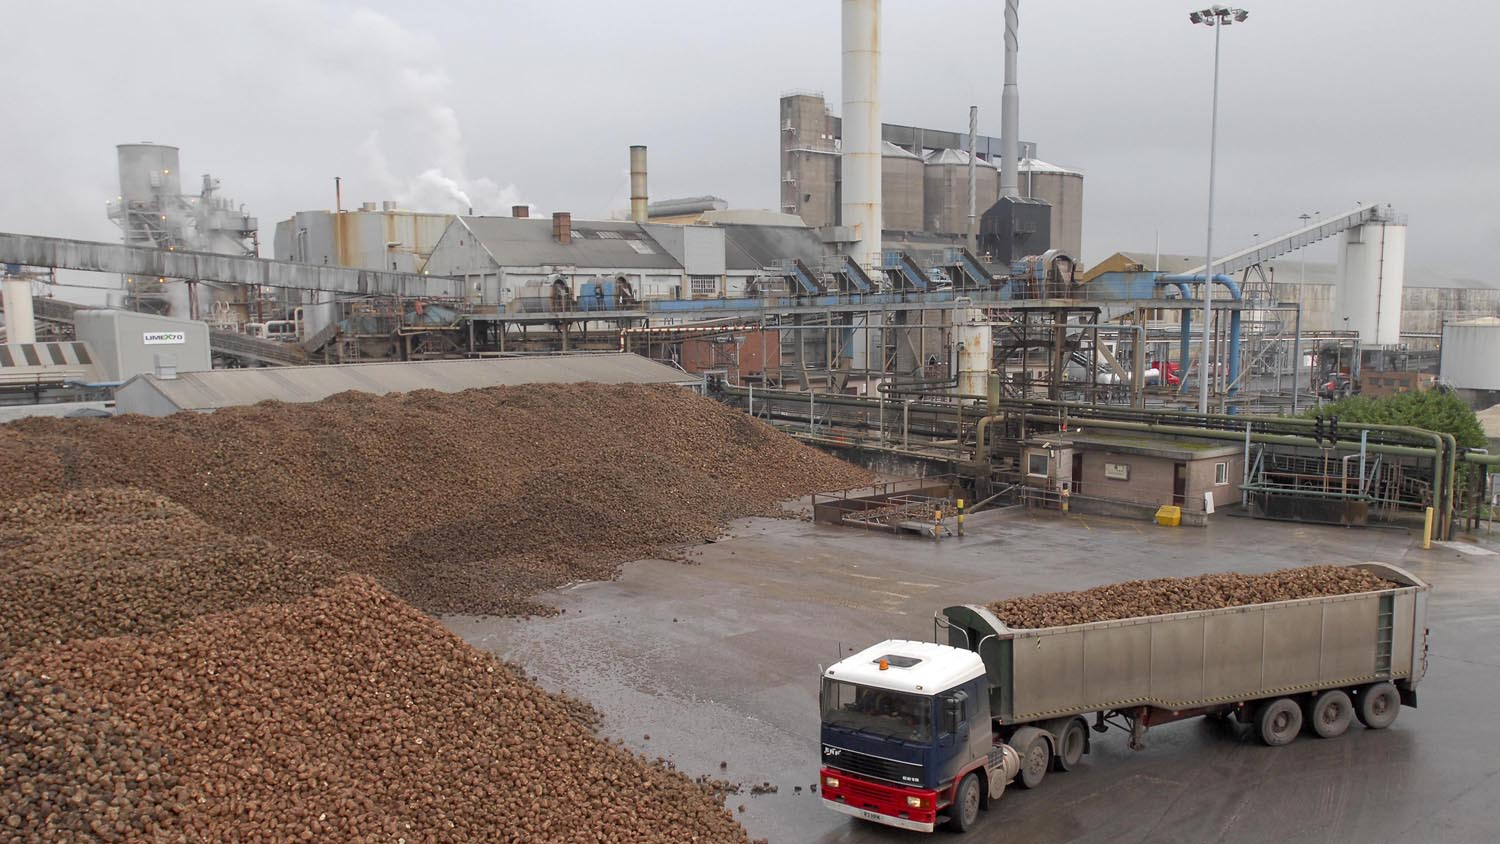 Spokesmen for British Sugar and the NFU have said price negotiations are continuing